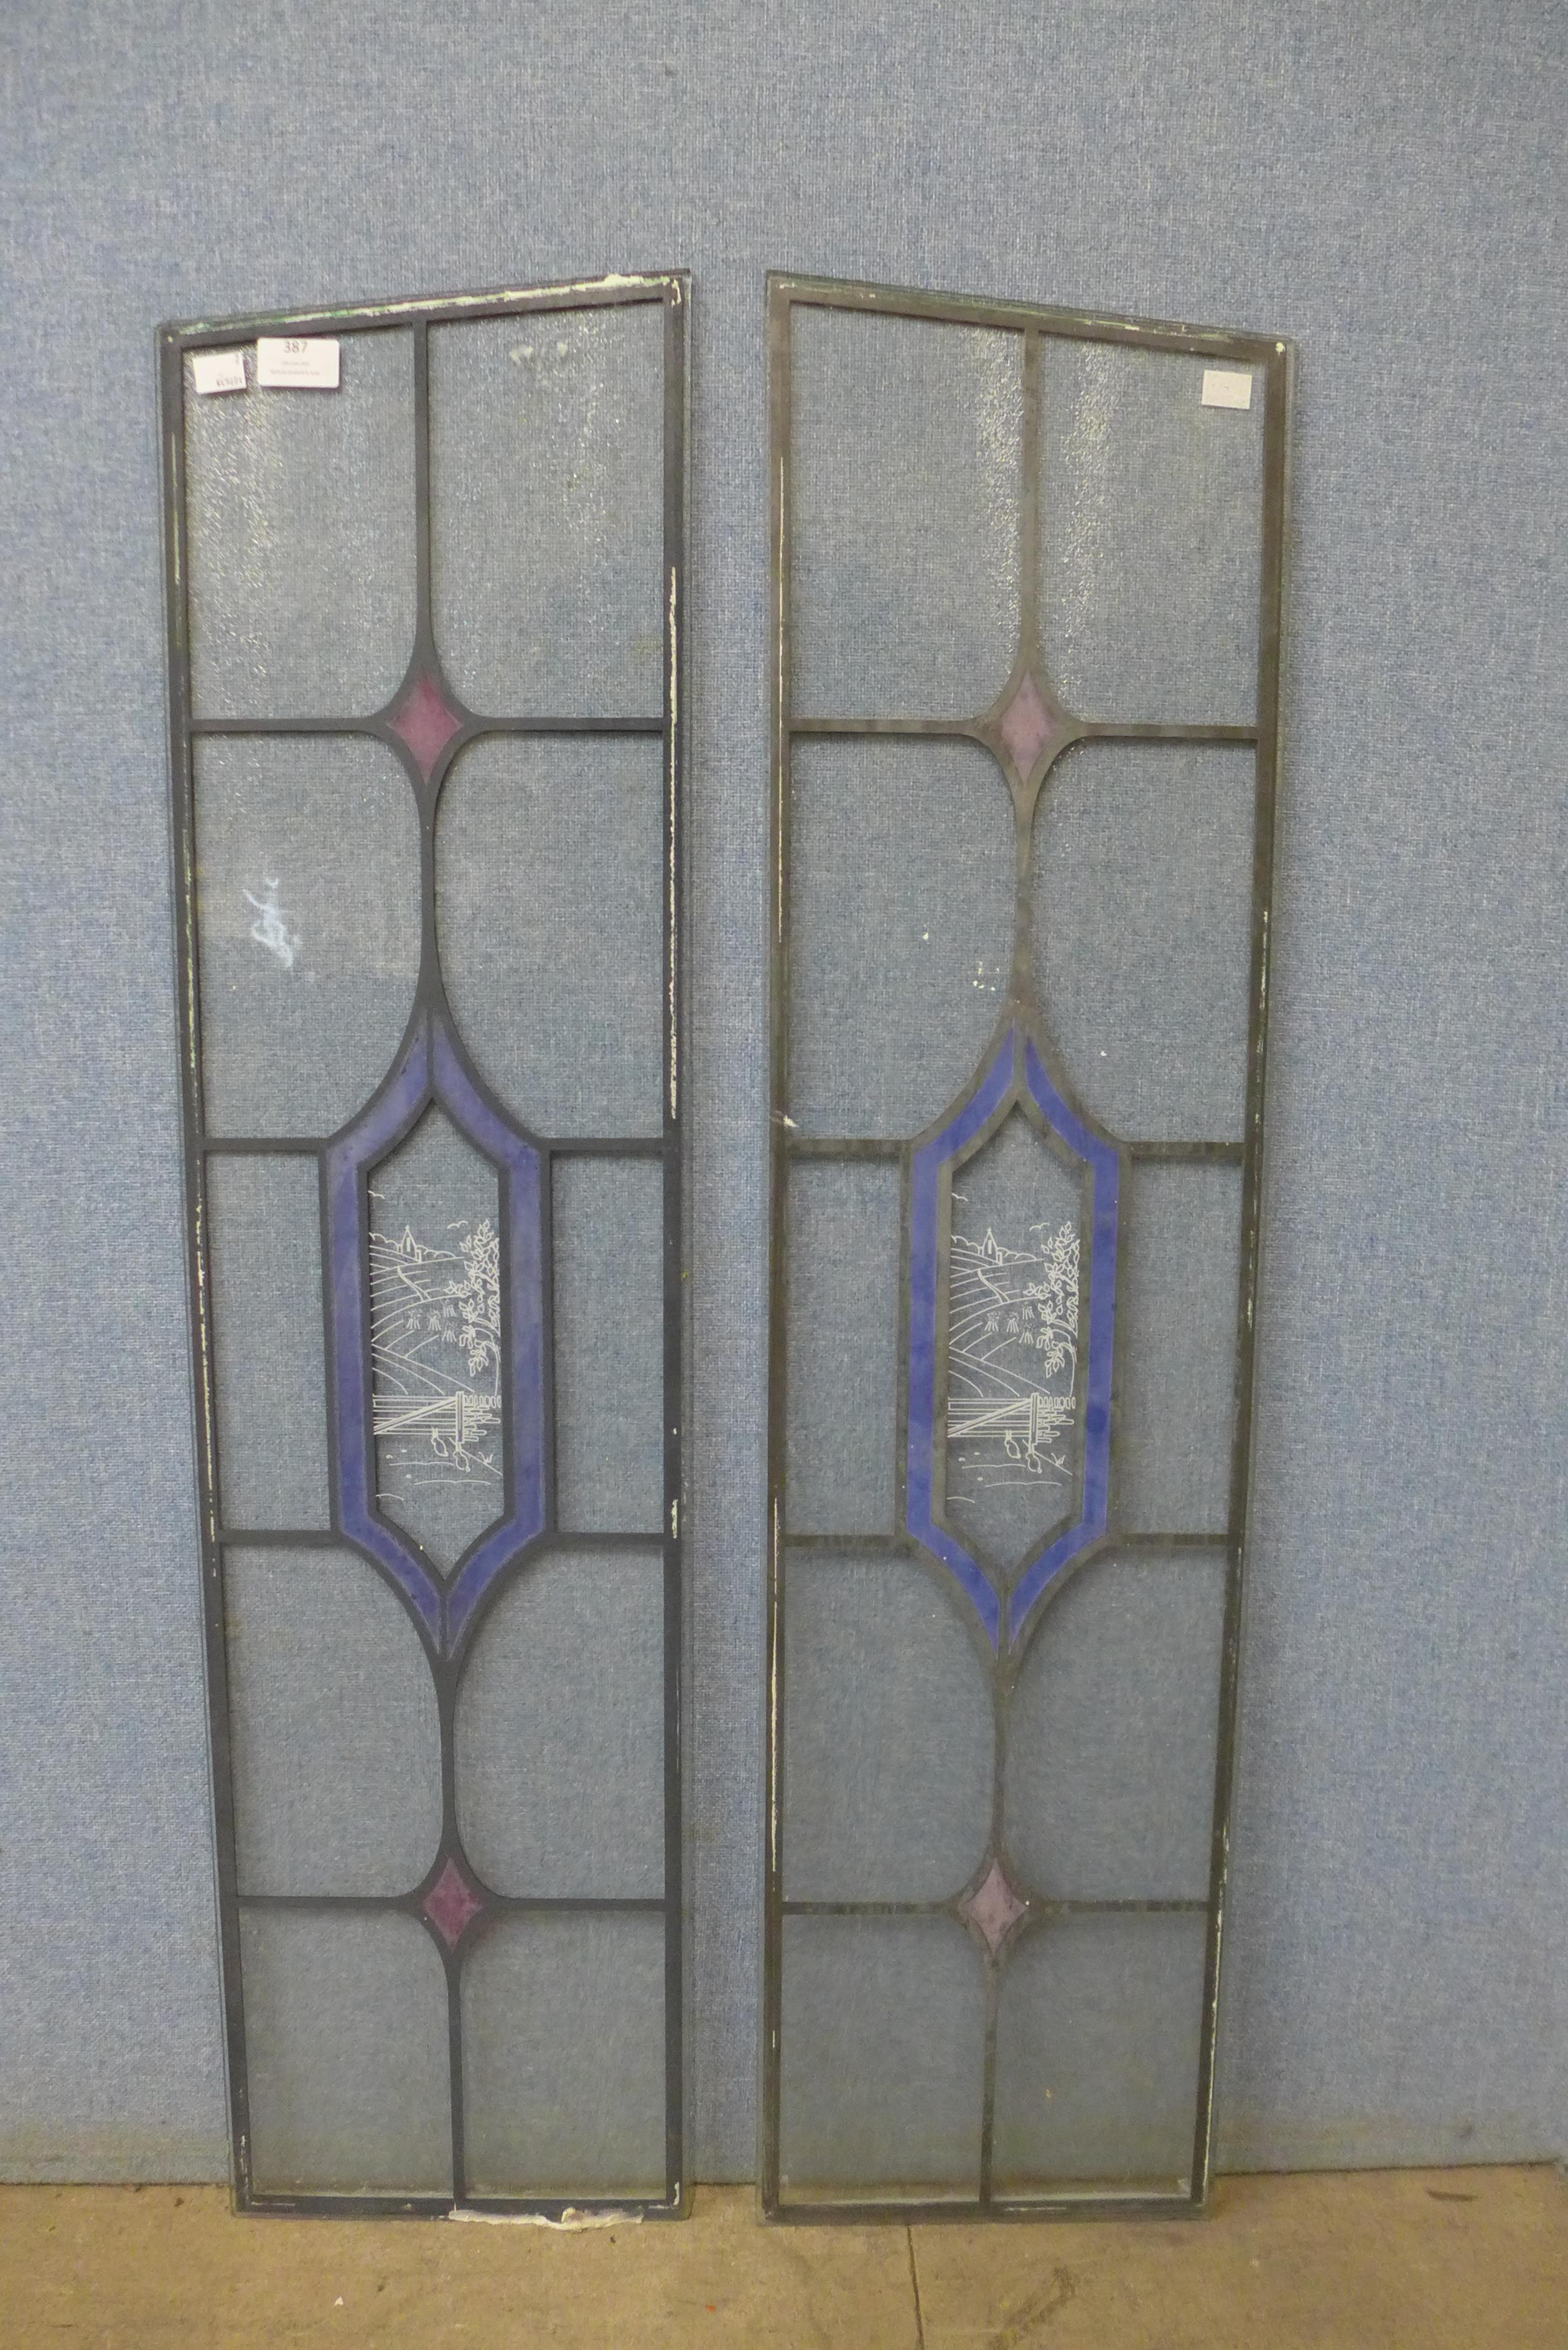 Two coloured glass window panes